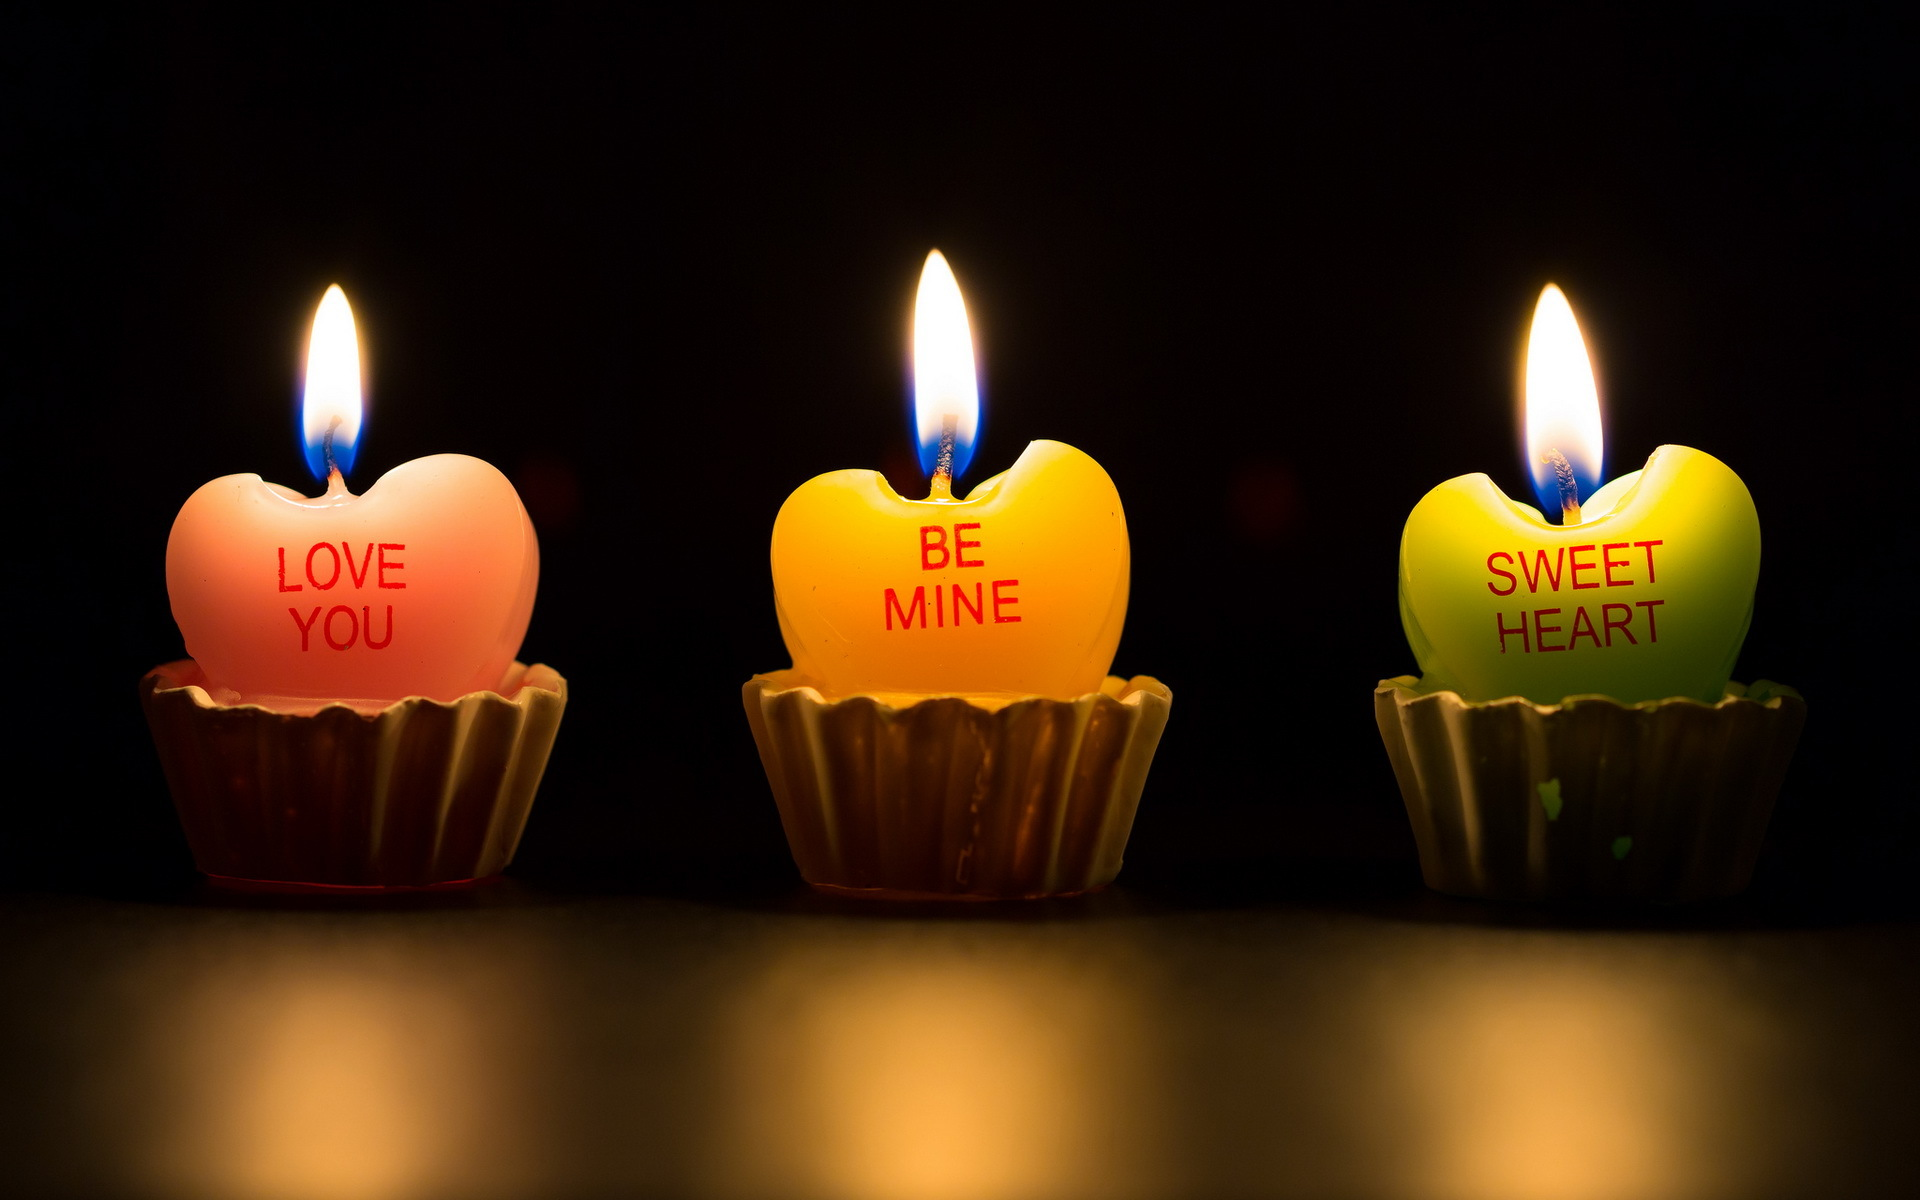 birthday candles wallpaper ; Candle-Wallpaper-17-1920x1200